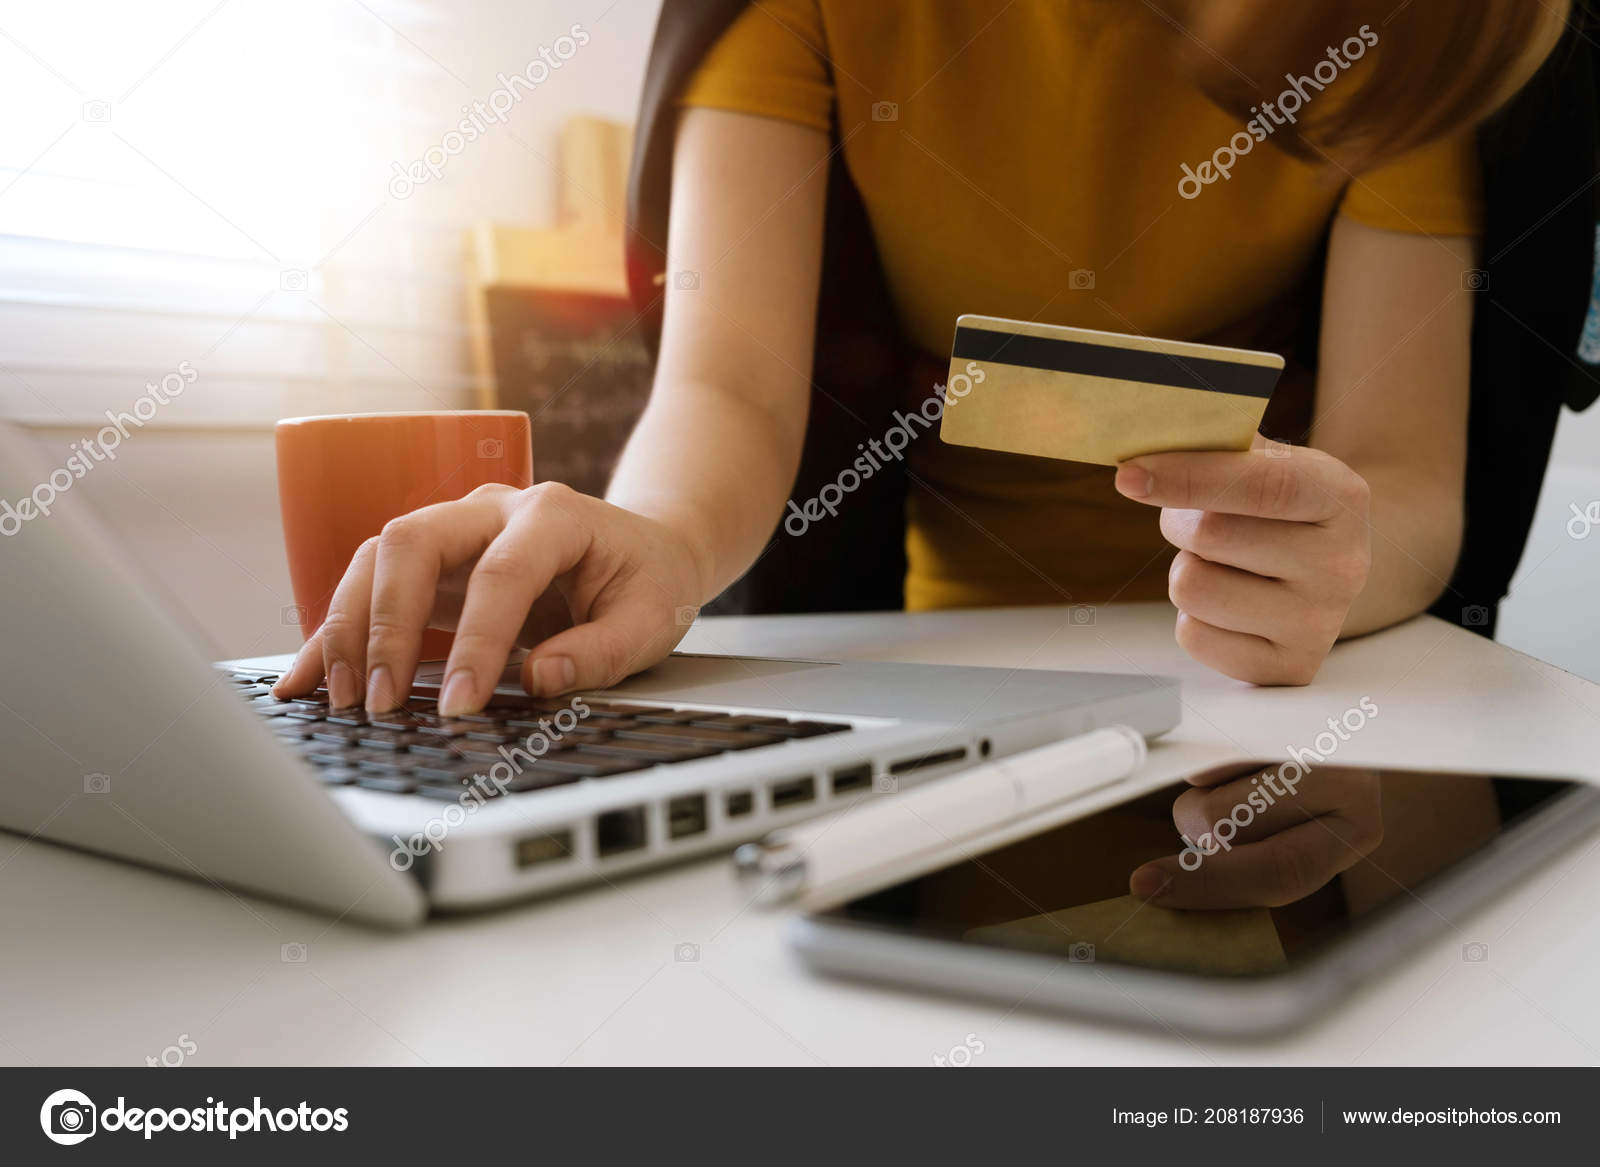 Business Woman Hands Using Smartphone Holding Credit Card